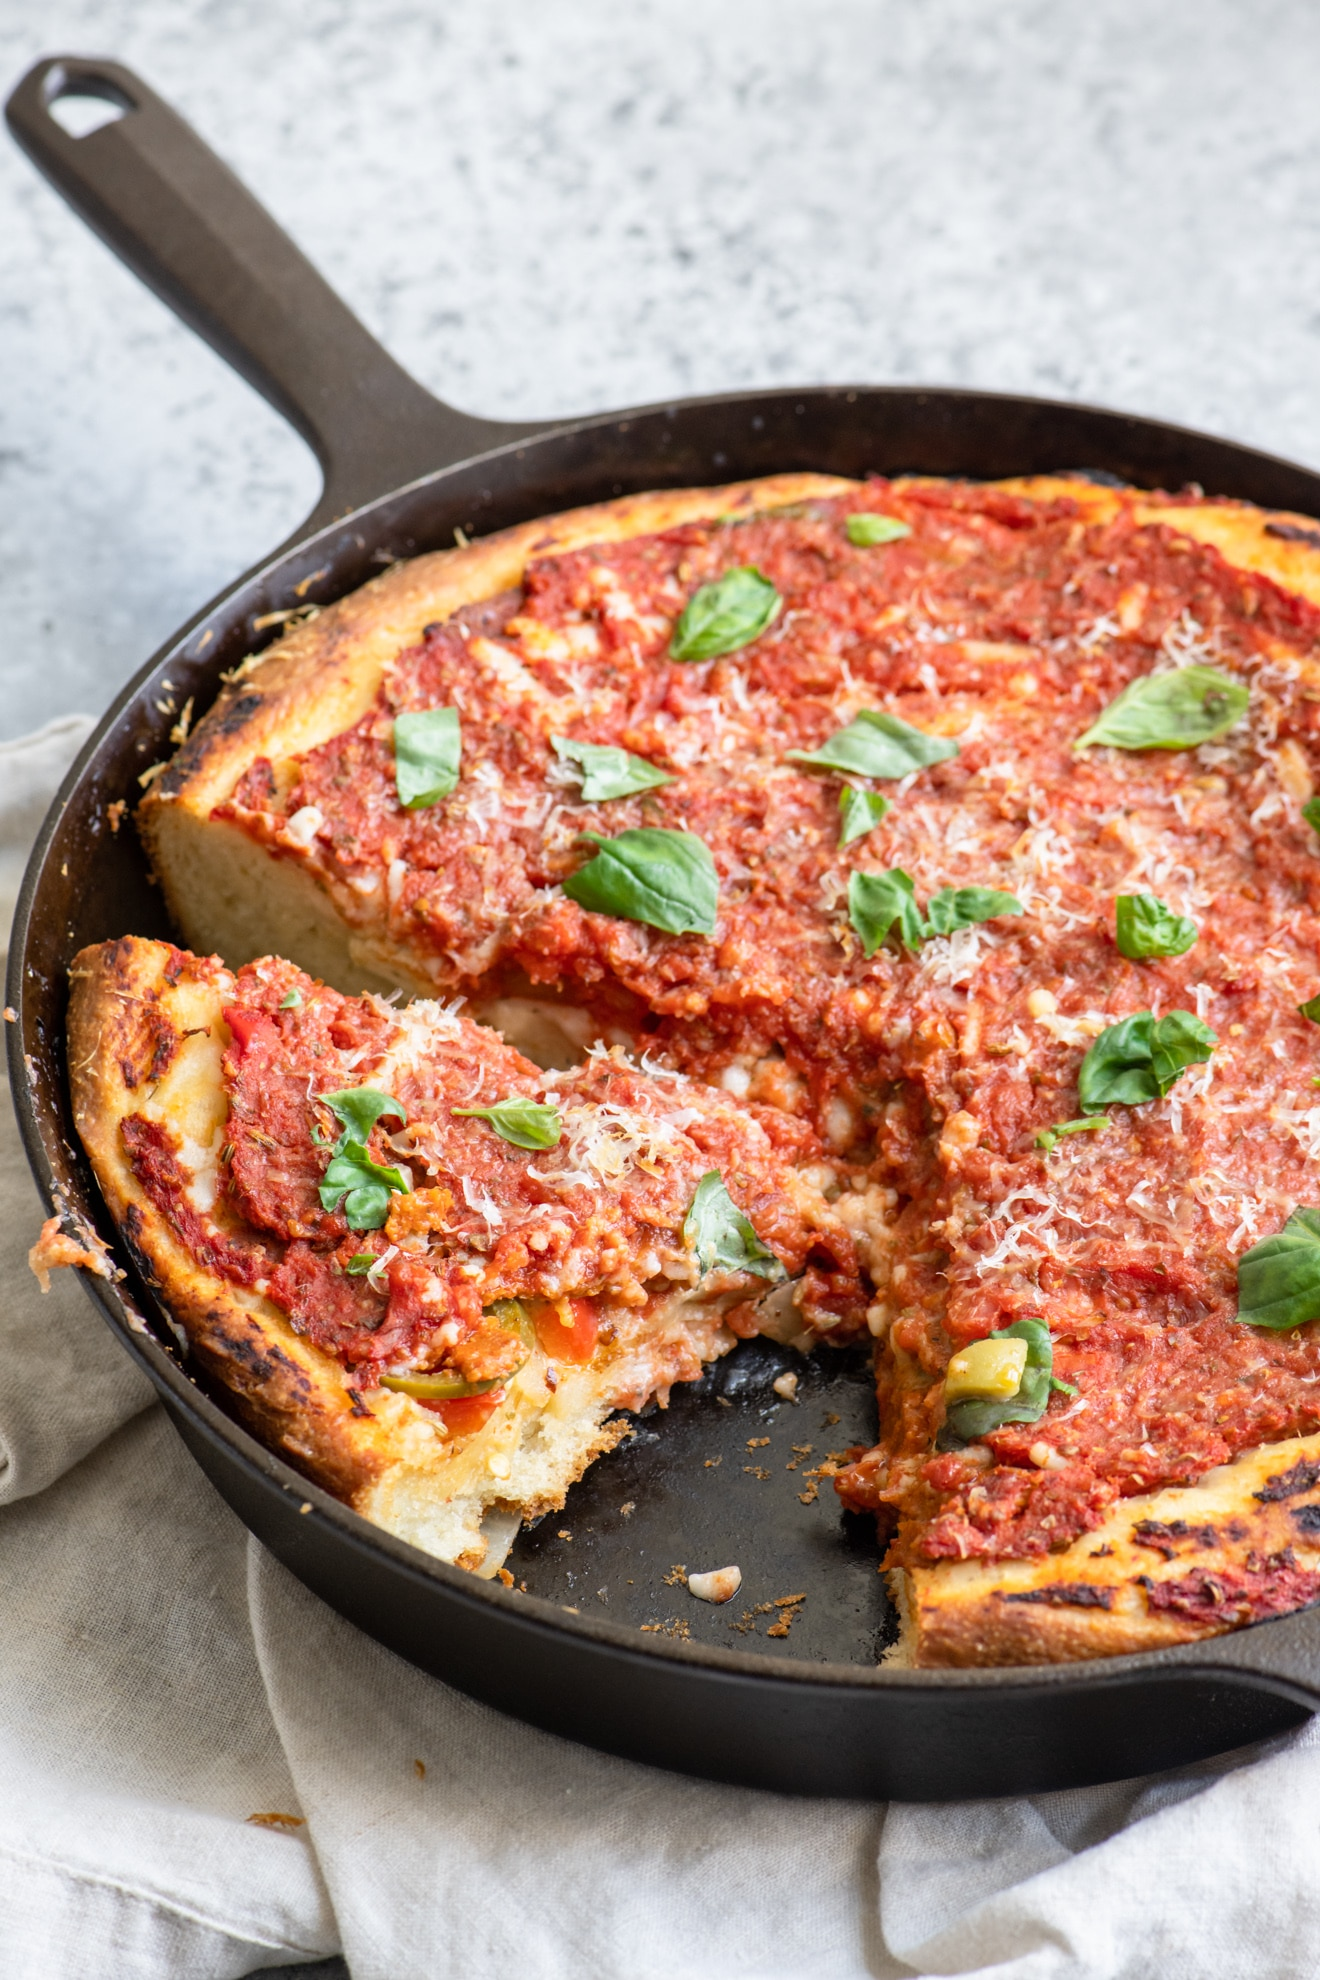 Deep dish pizza with one slice removed and a second cut in the pan